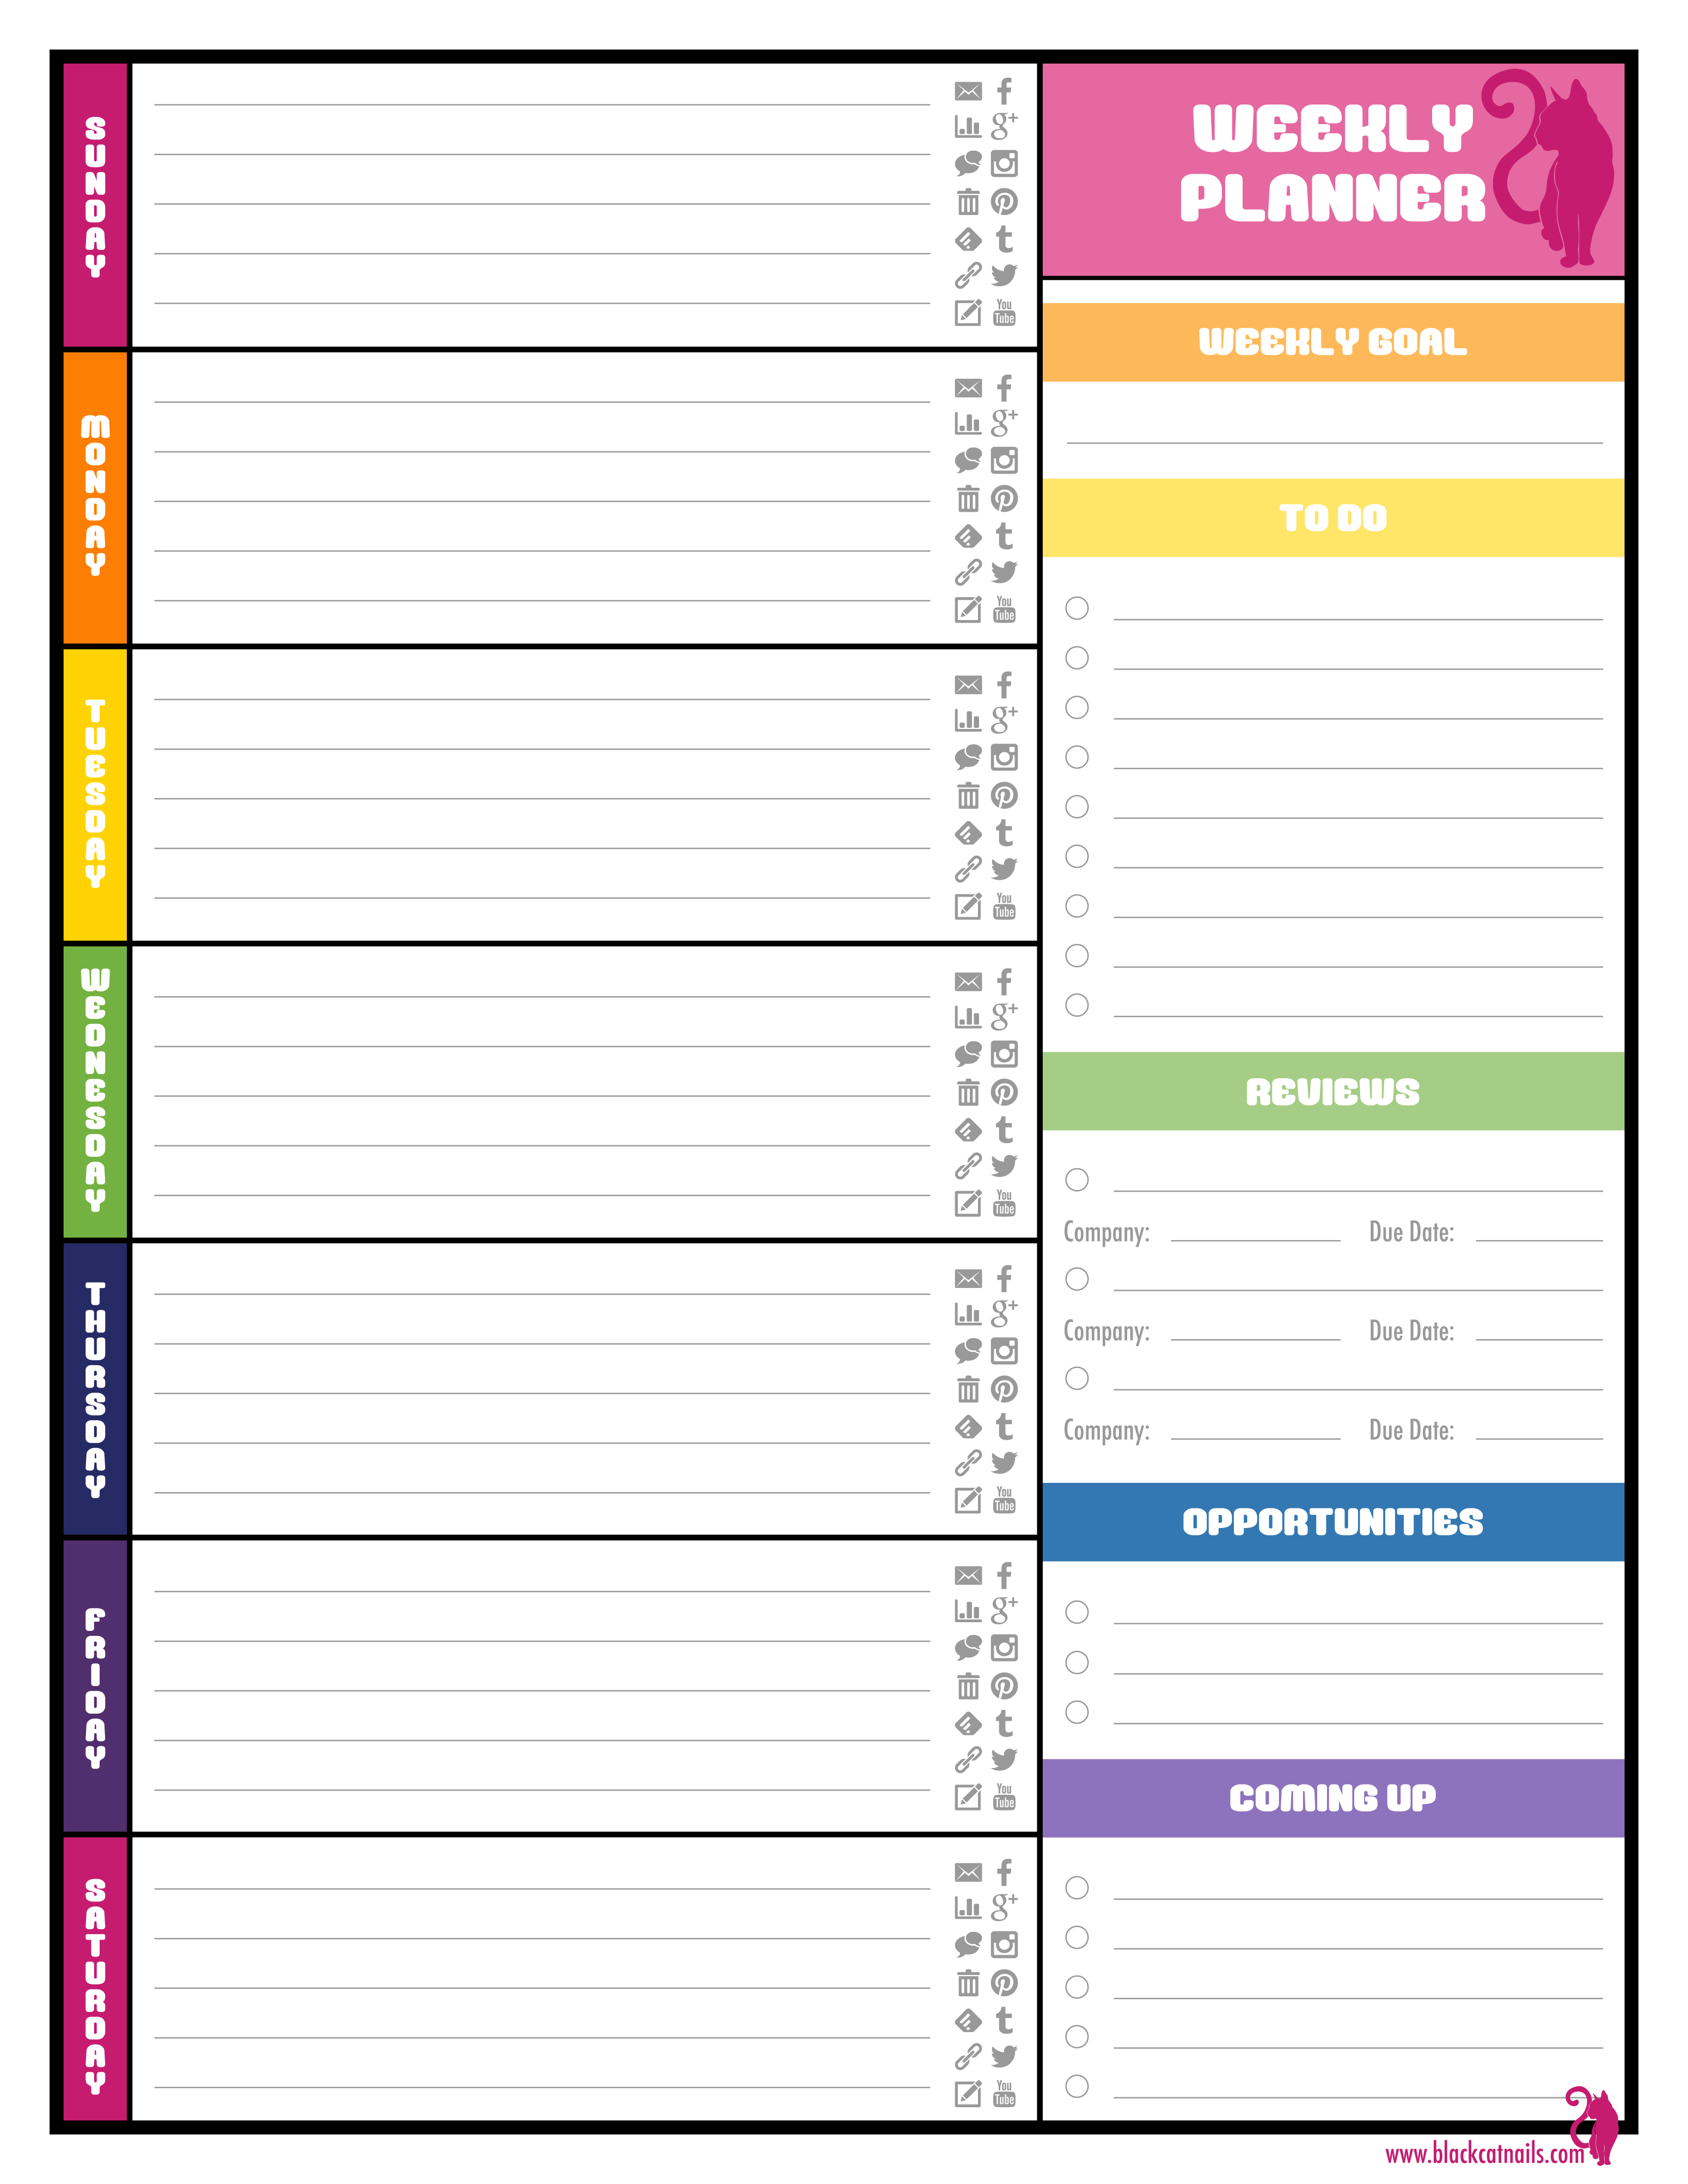 Colorful Weekly Blogging Planner Image | Blog Life | Pinterest